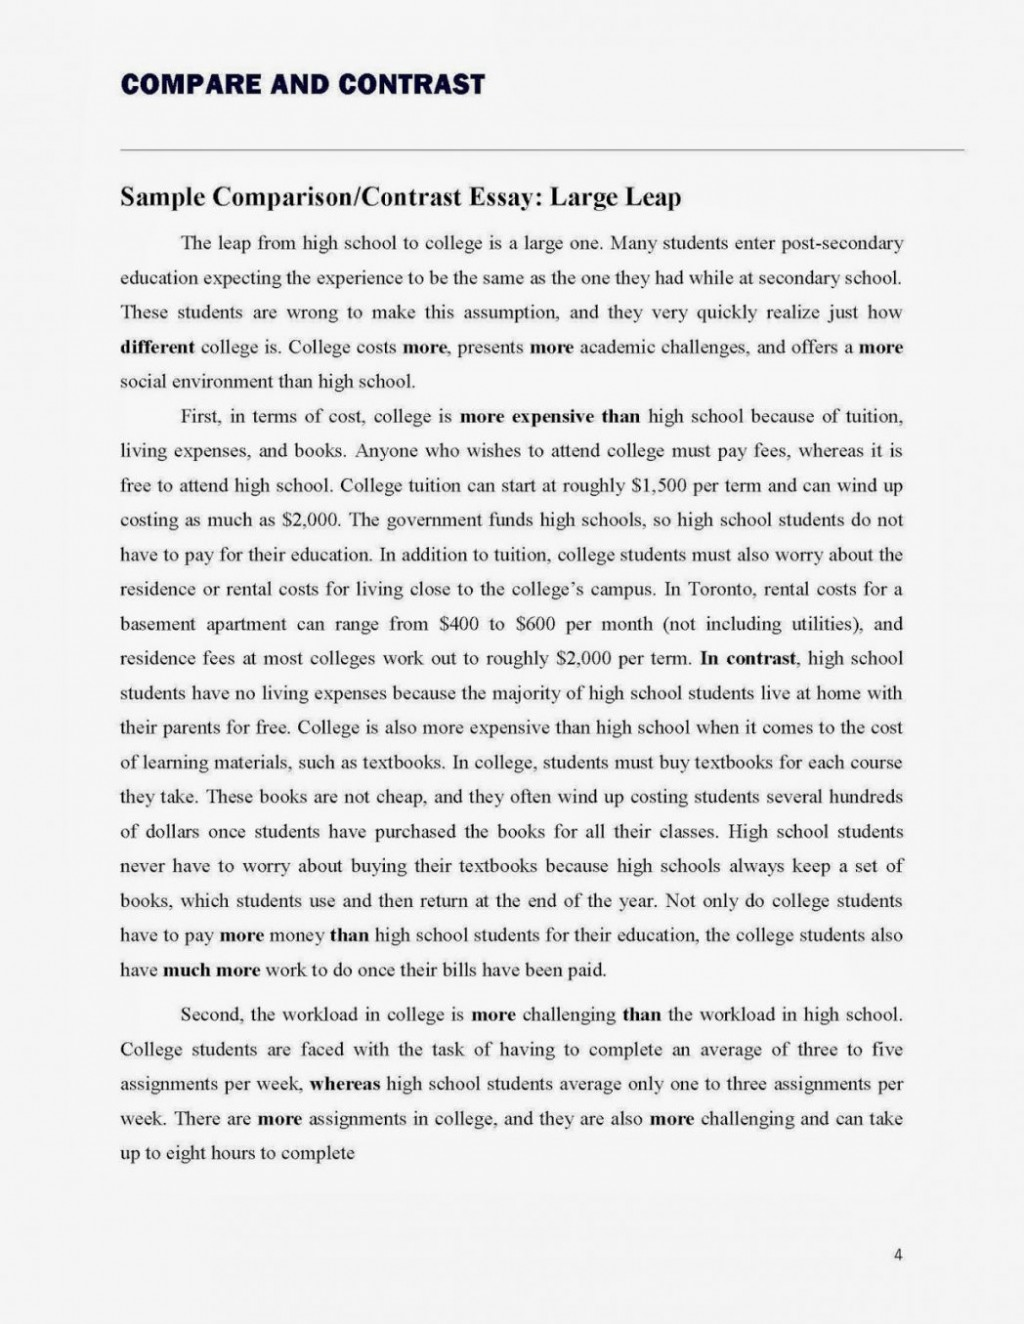 005 Compare And Contrast Essay Examples College Example Comparison That W Application Worked Phenomenal Outline For Students Introduction Paragraph Large